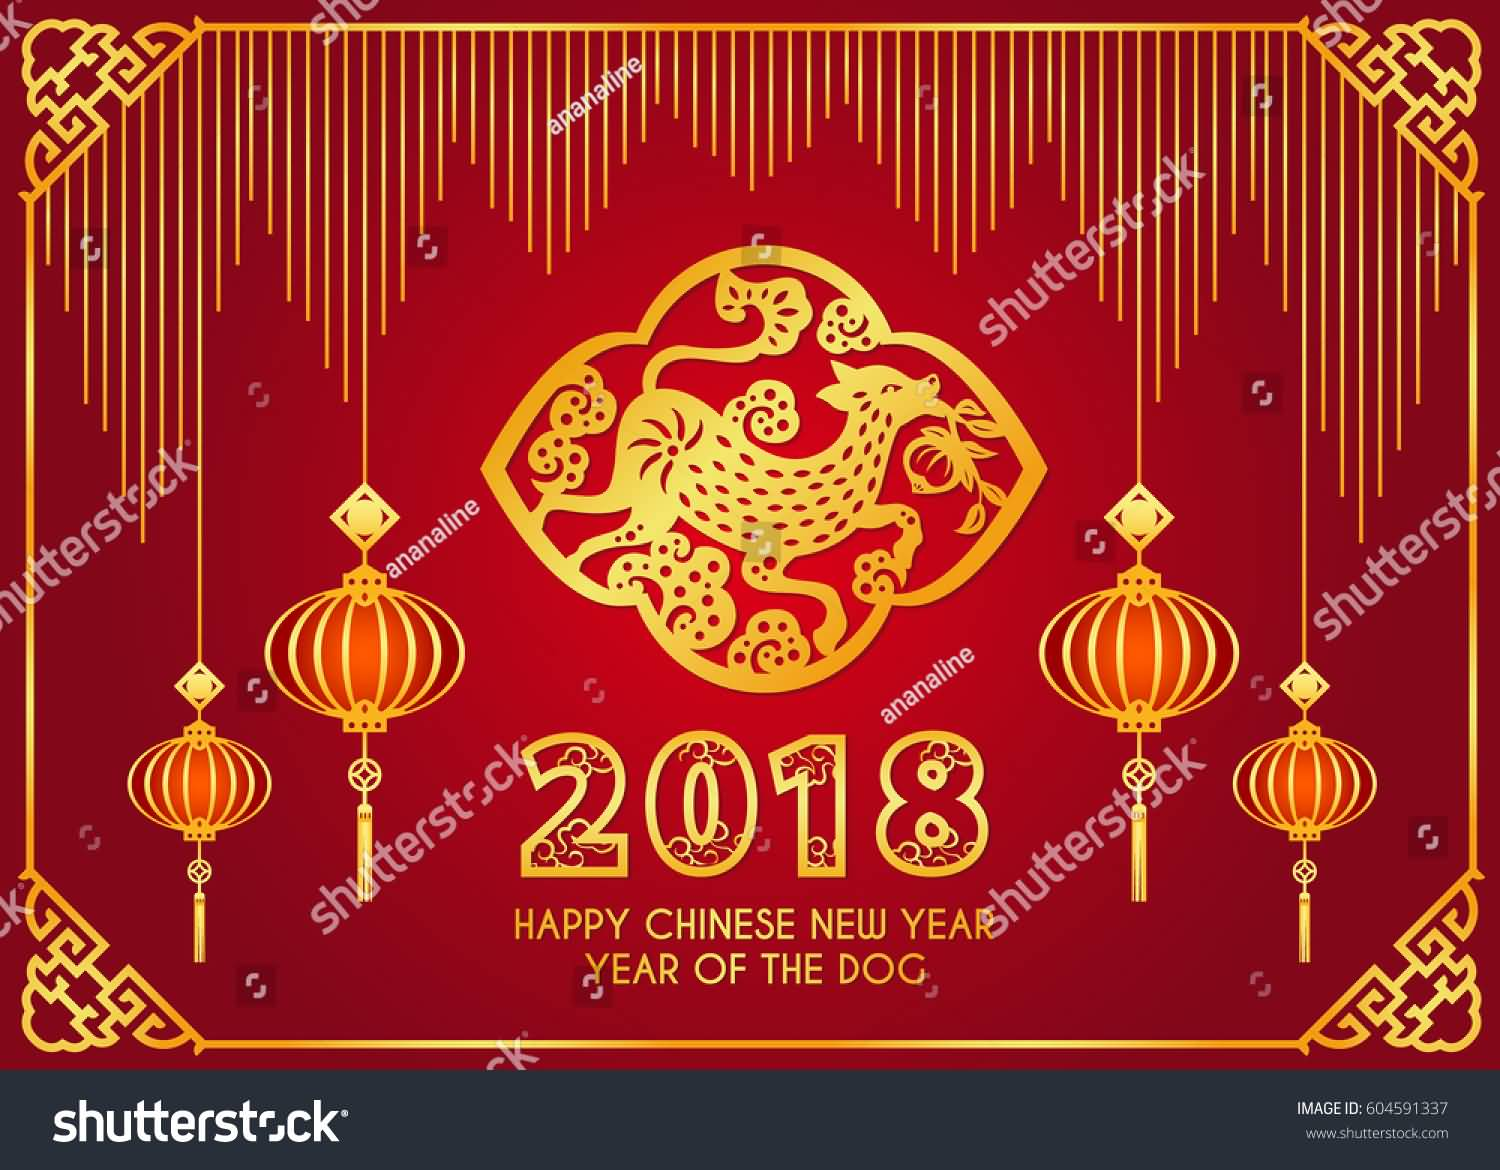 Happy Chinese New Year 2018 Cards Image Picture Photo Wallpaper 07